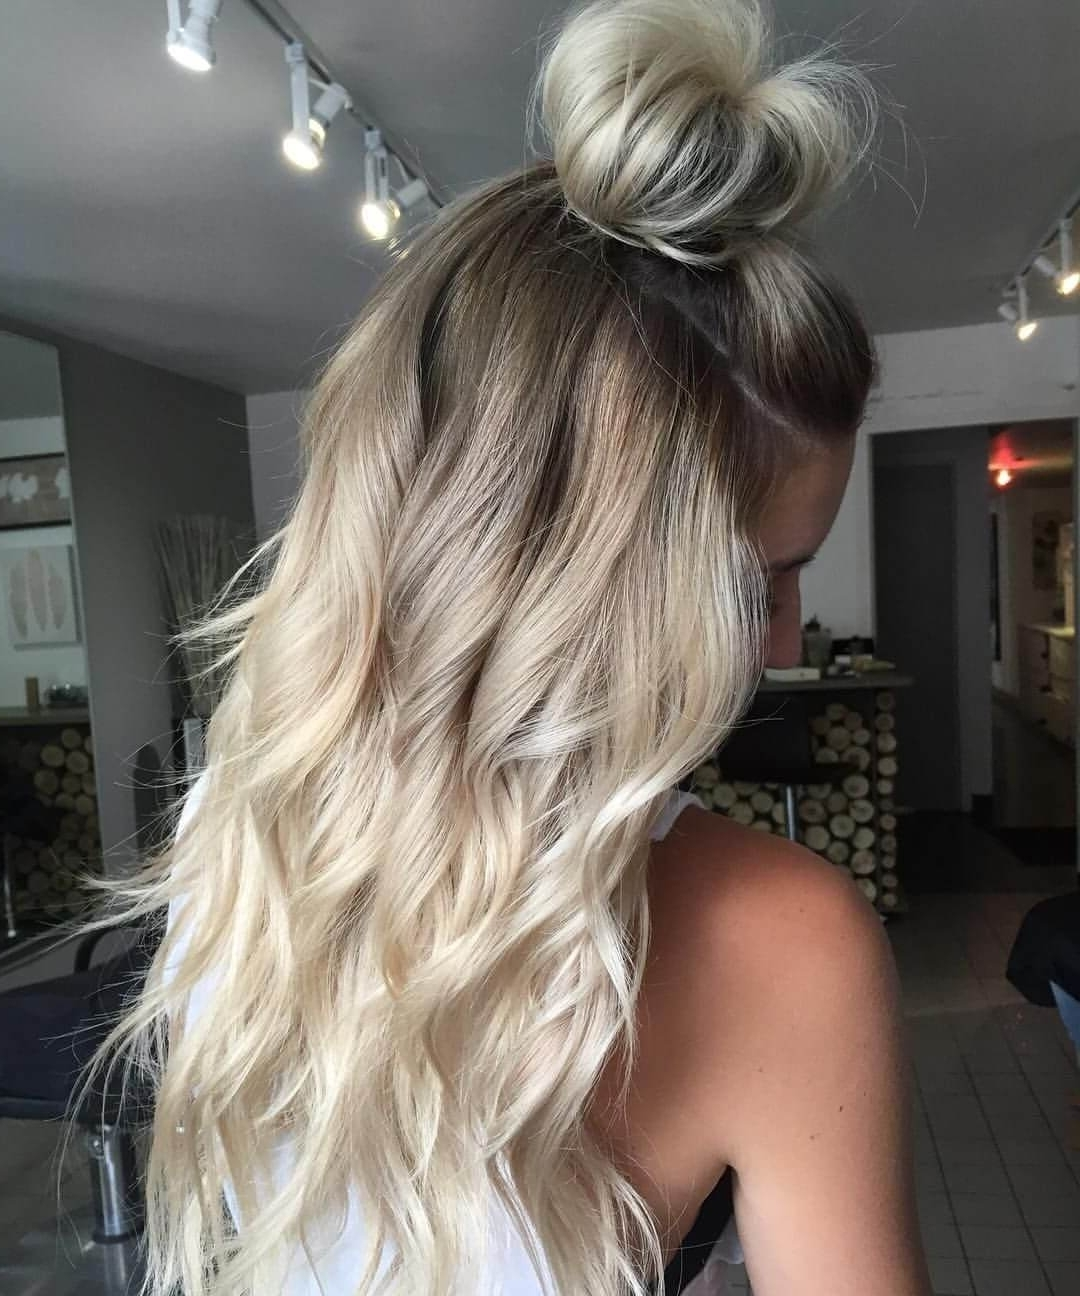 Current Shoulder Length Ombre Blonde Hairstyles Pertaining To 50 Proofs That Anyone Can Pull Off The Blond Ombre Hairstyle (View 5 of 20)